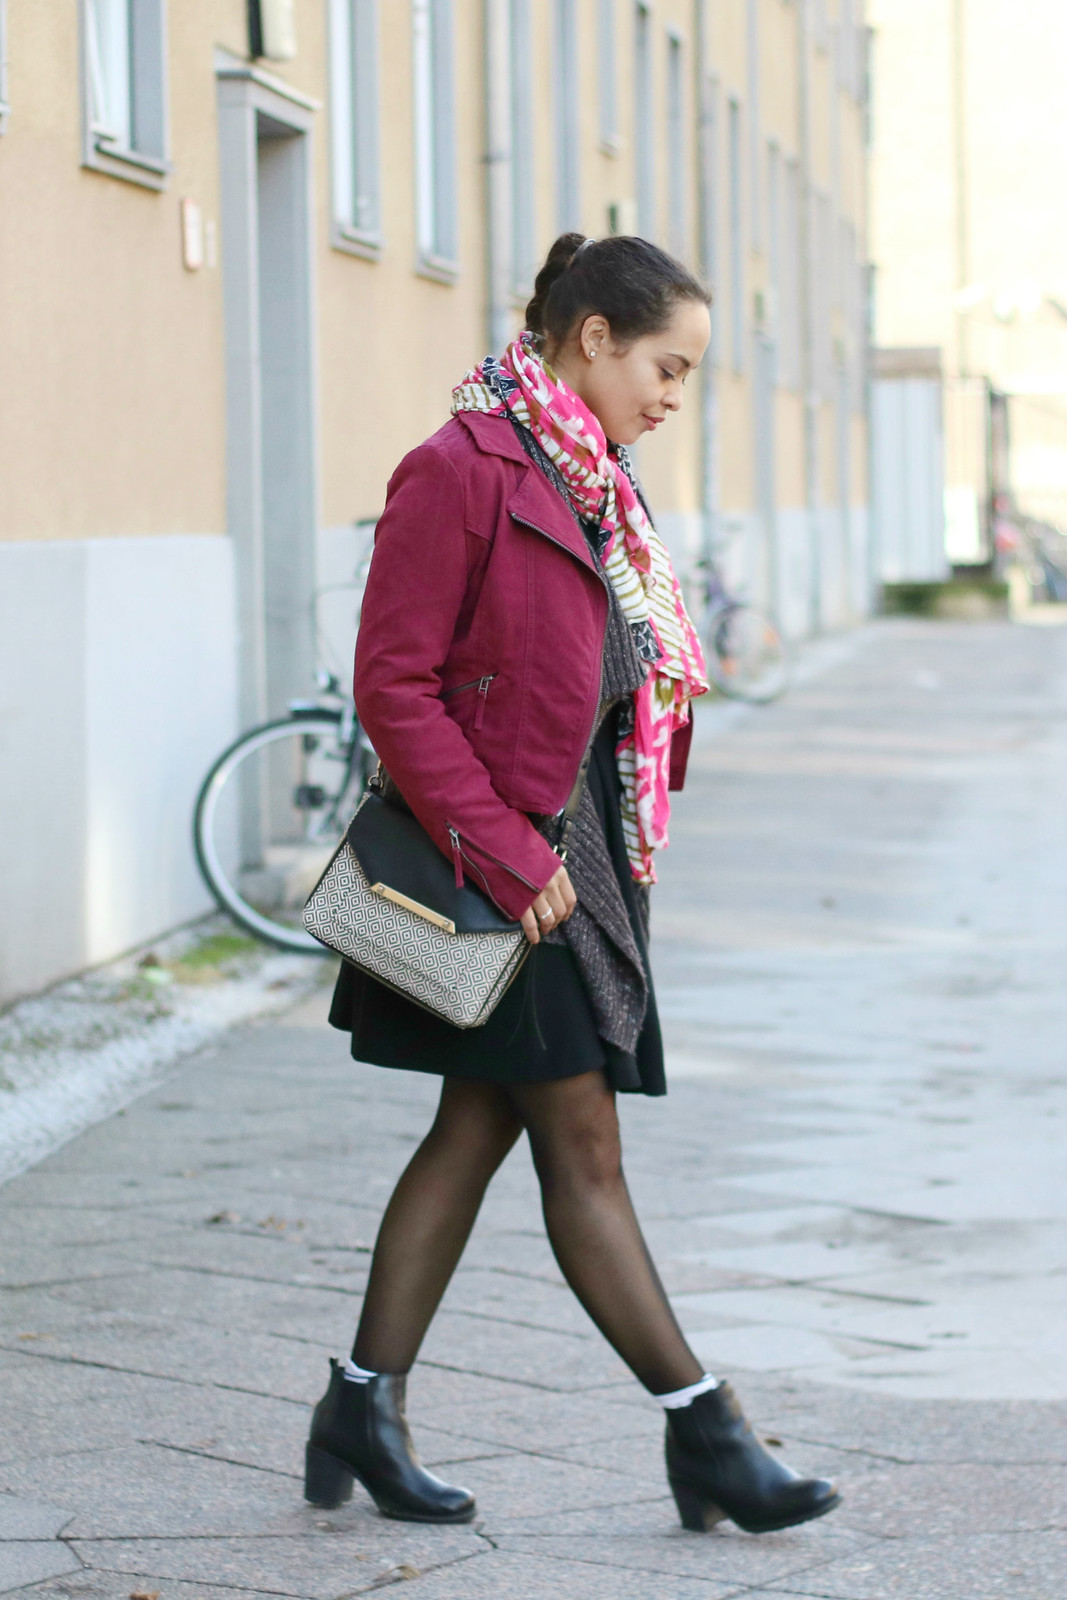 H&M Biker Jacket. Orsay Knit, Mango Dress, Stella & Dot Scarf, Stella & Dot Bag, Buffalo Chelsea Boots